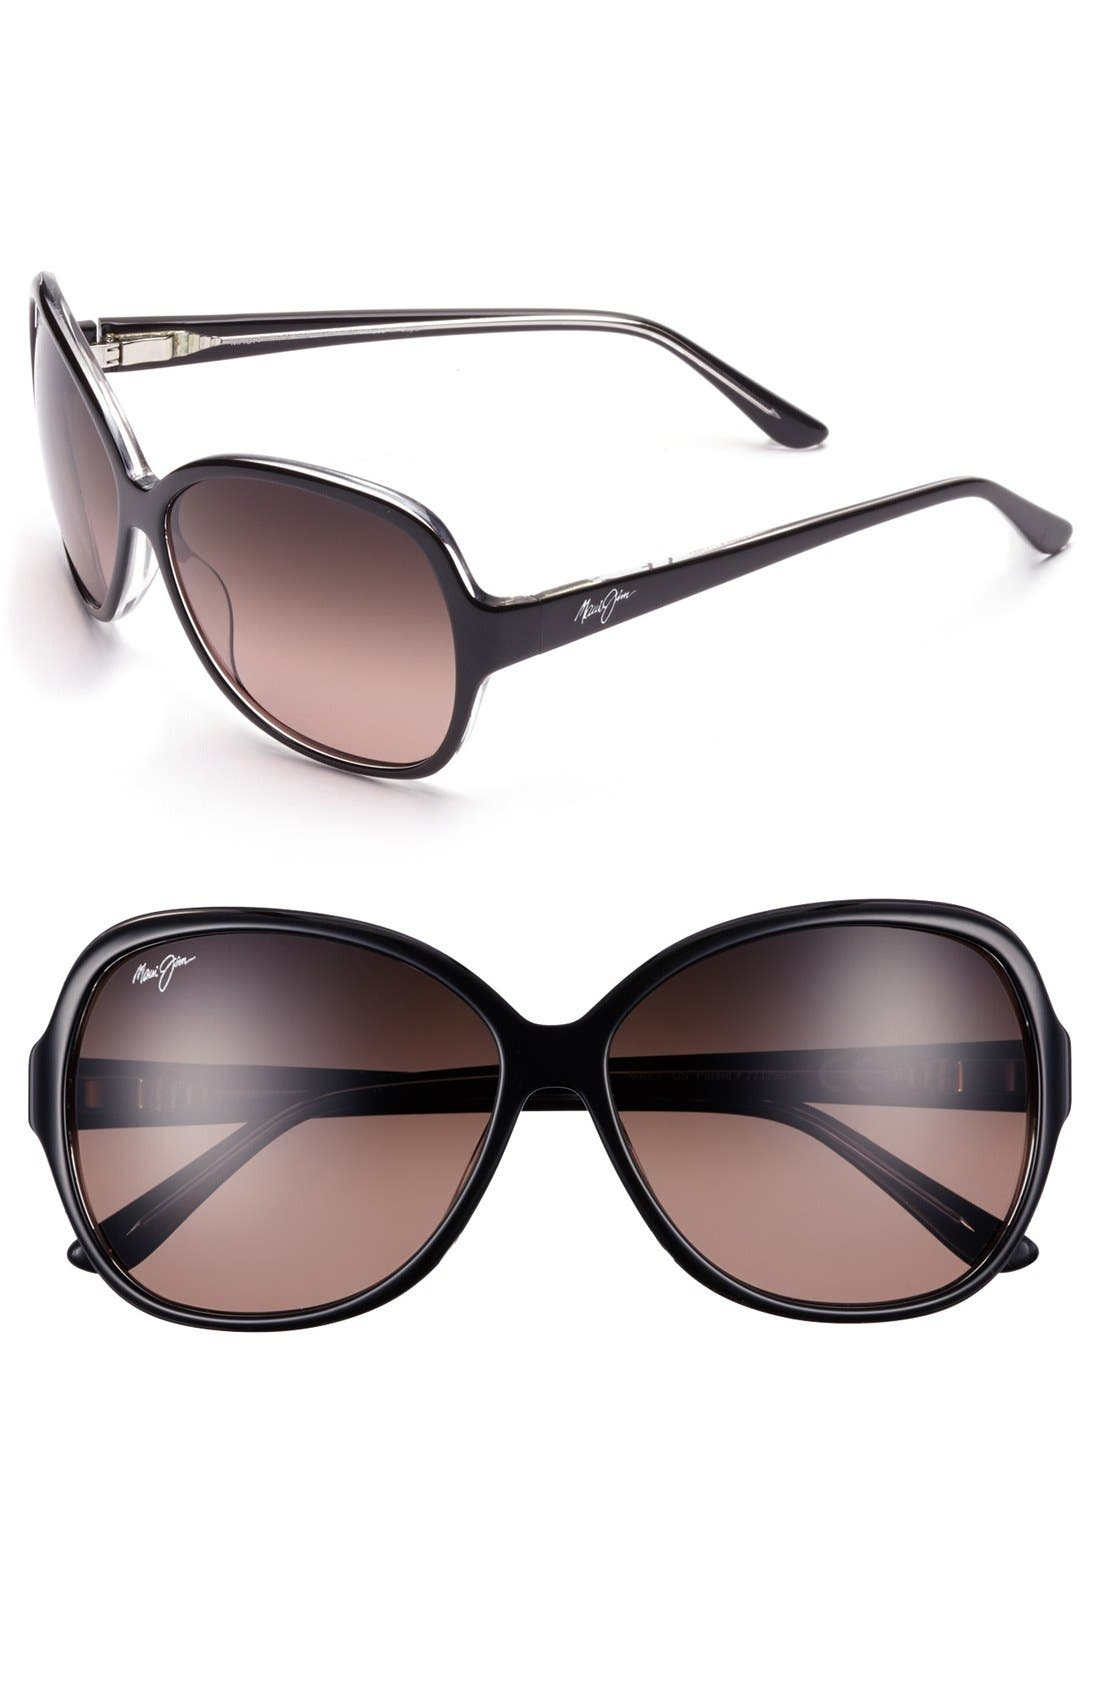 Maile 60mm PolarizedPlus<sup>®</sup> Sunglasses,                             Main thumbnail 1, color,                             BLACK/ CRYSTAL